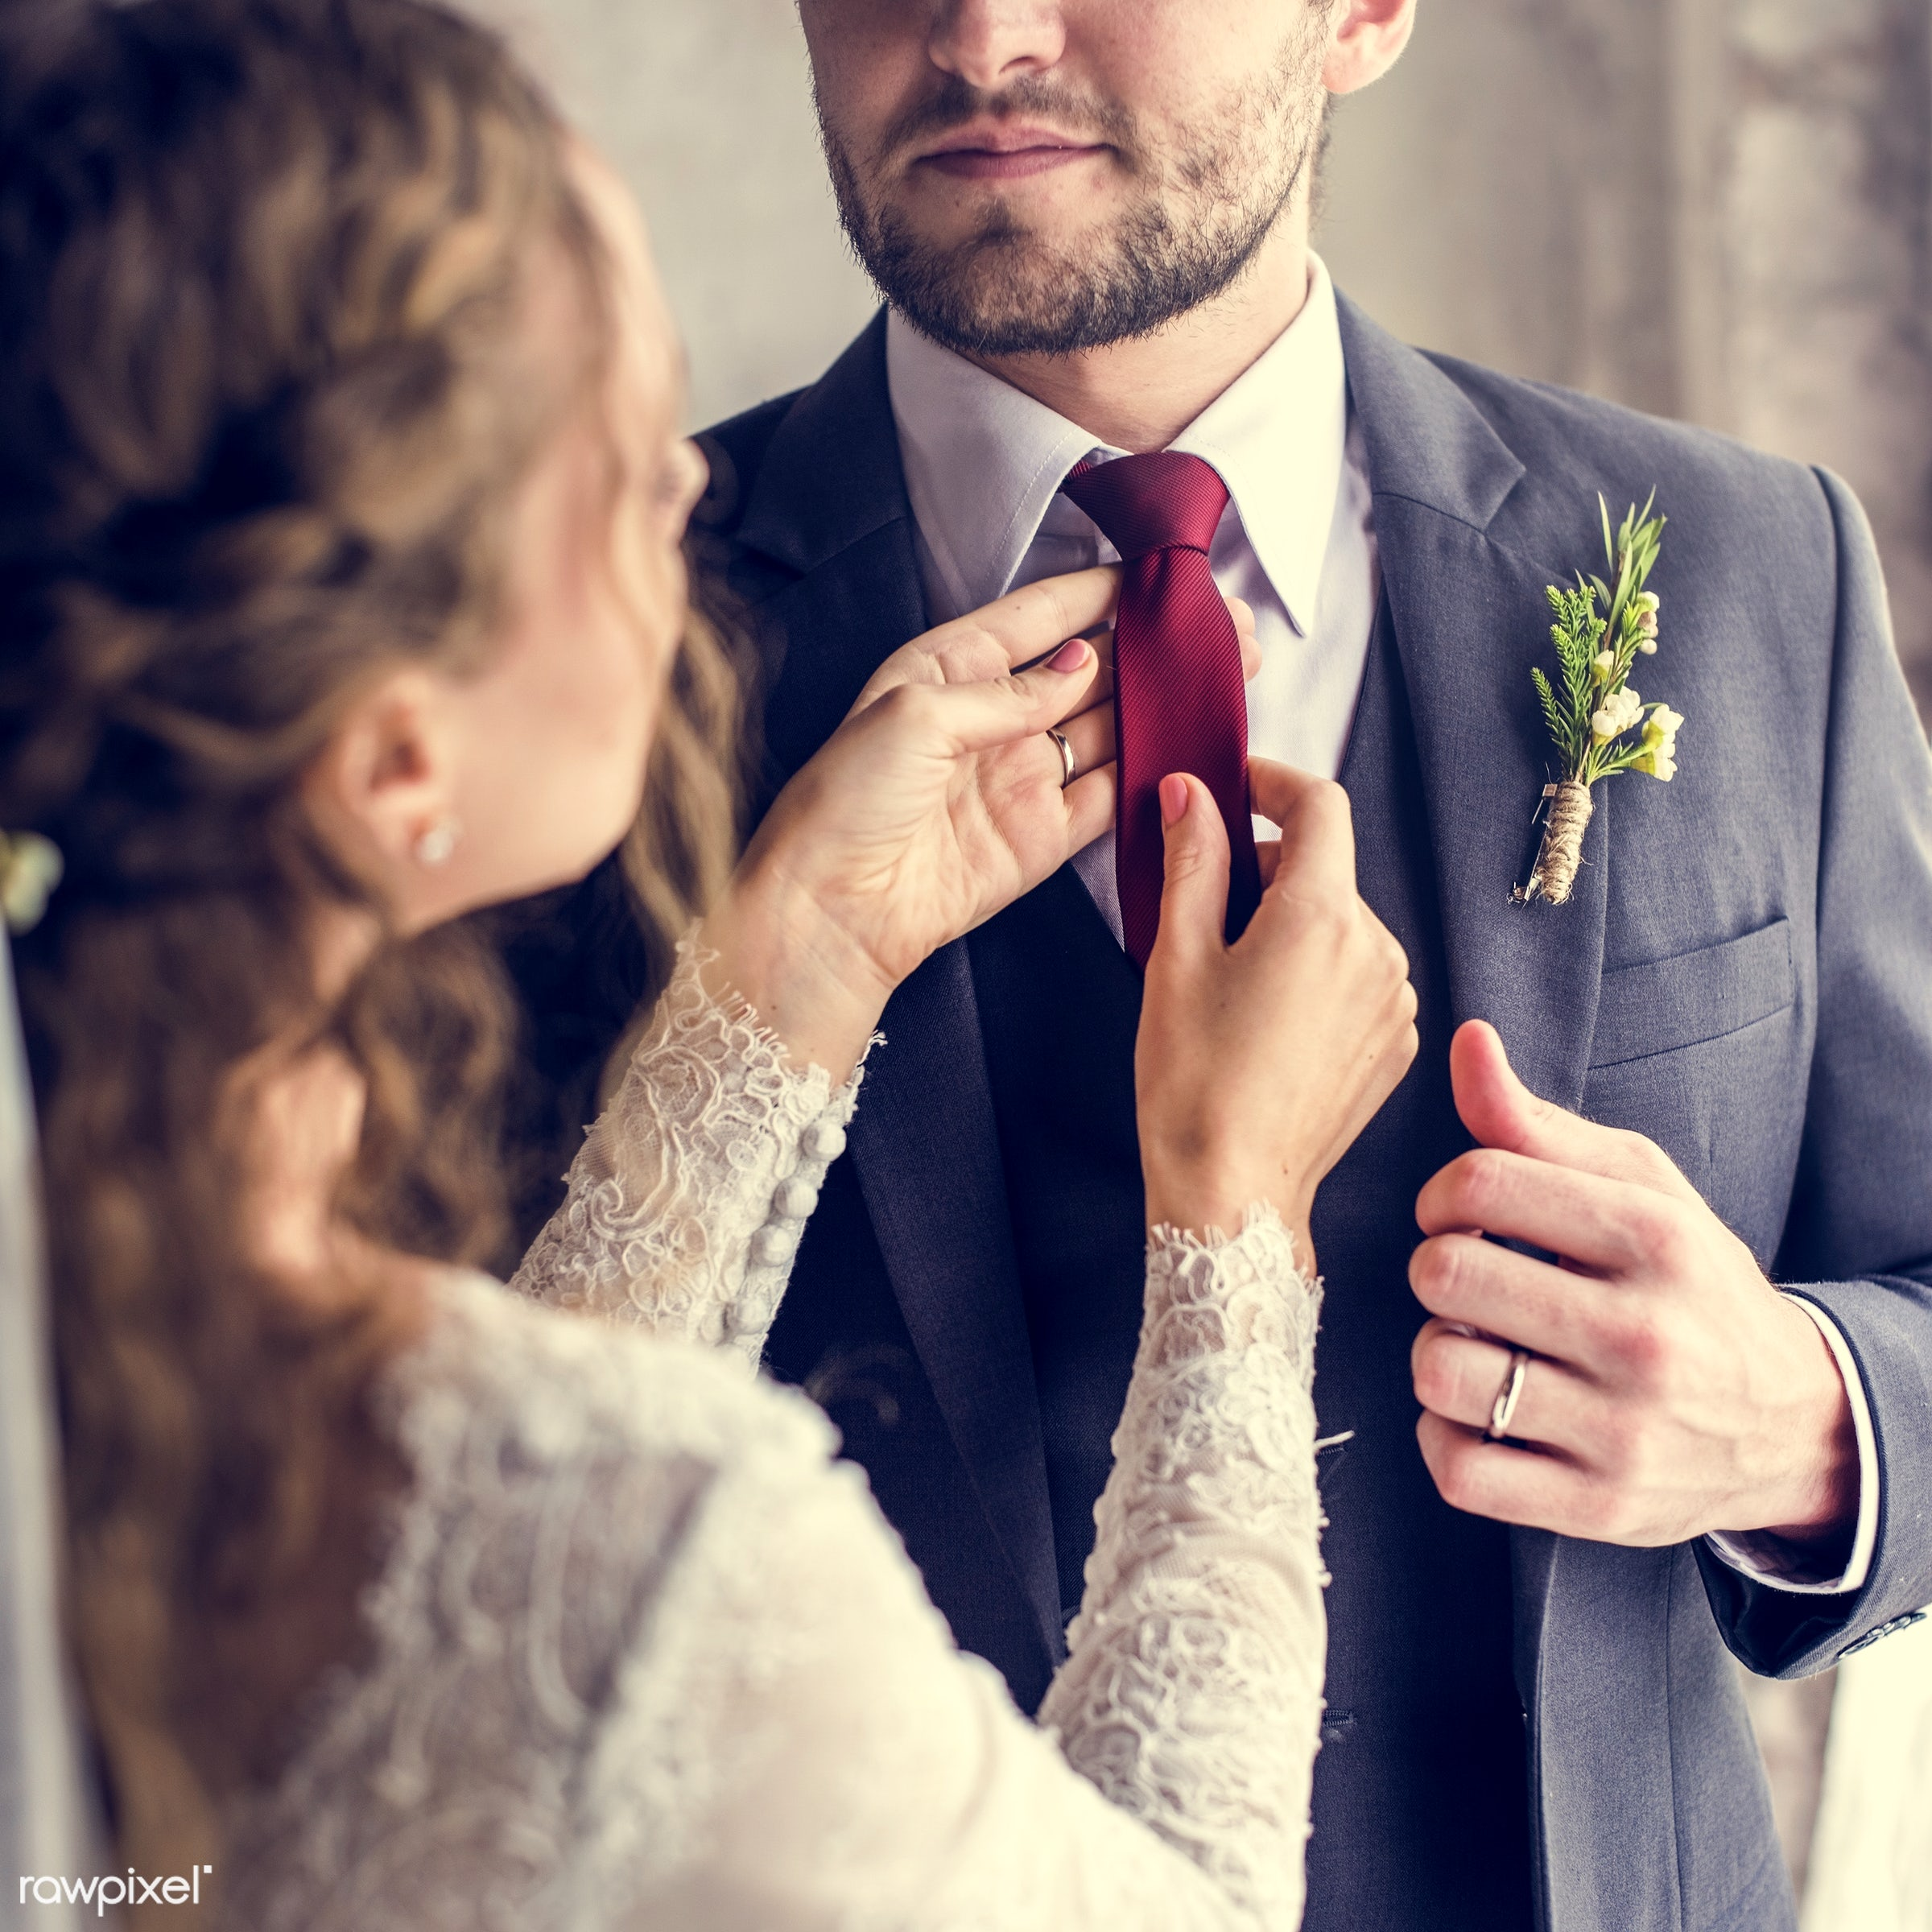 person, tie, bonding, husband, people, love, woman, event, care, couple, soulmate, bride, cheerful, smiling, man, marry,...